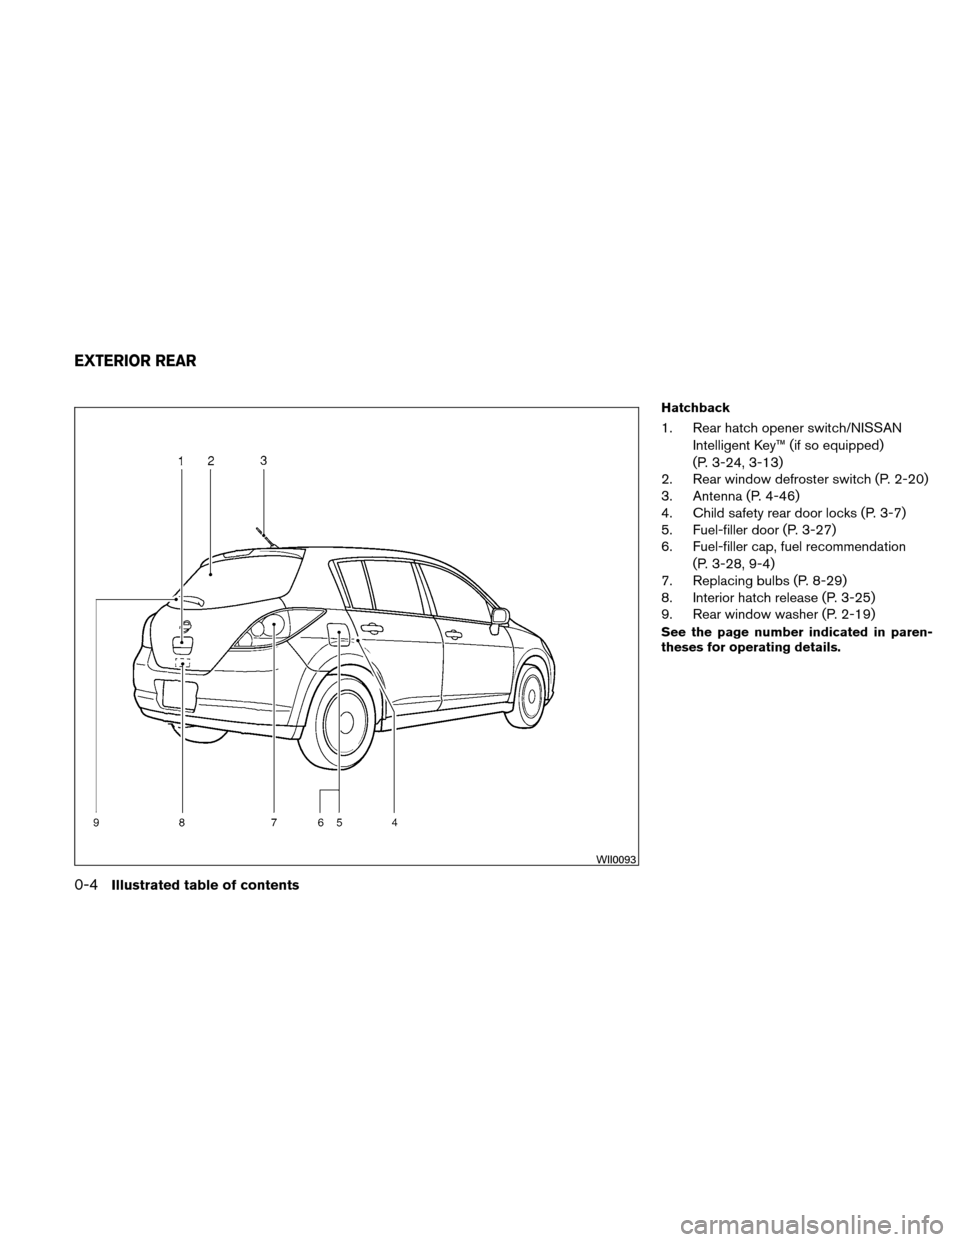 NISSAN VERSA HATCHBACK 2010 1.G Owners Manual, Page 11